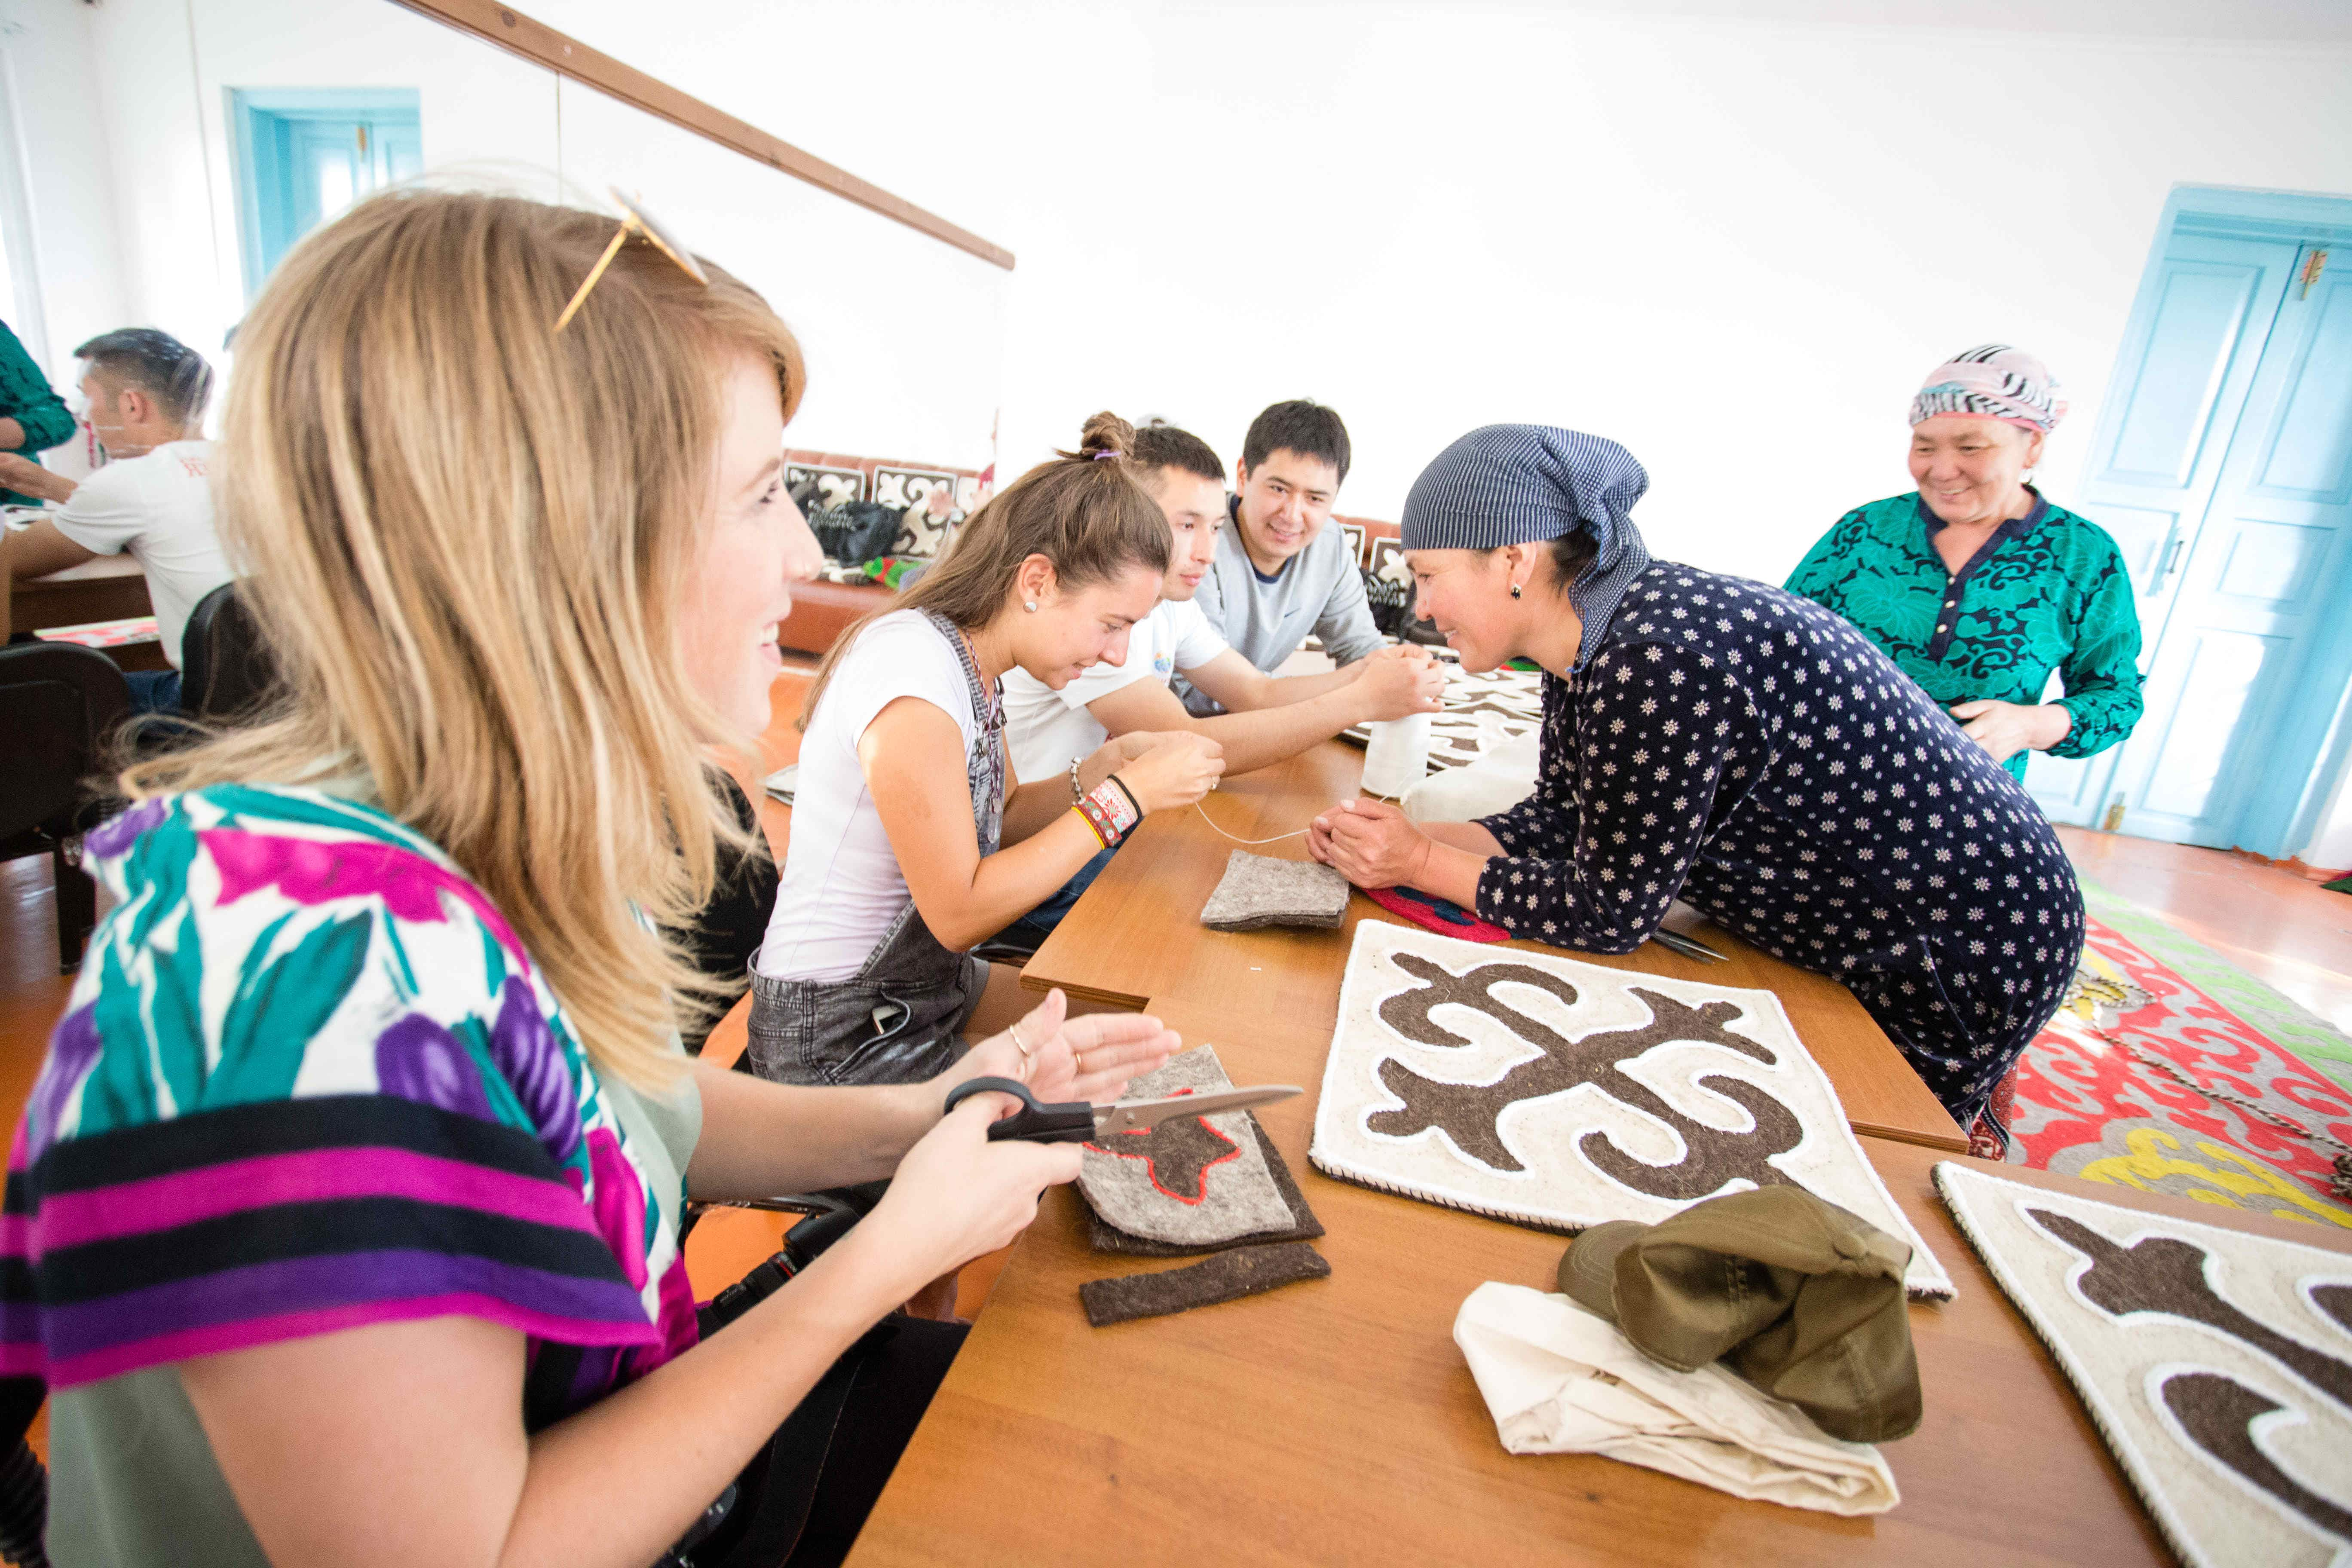 New tours connect travellers with local culture at the gateway to Kyrgyzstan's mountains